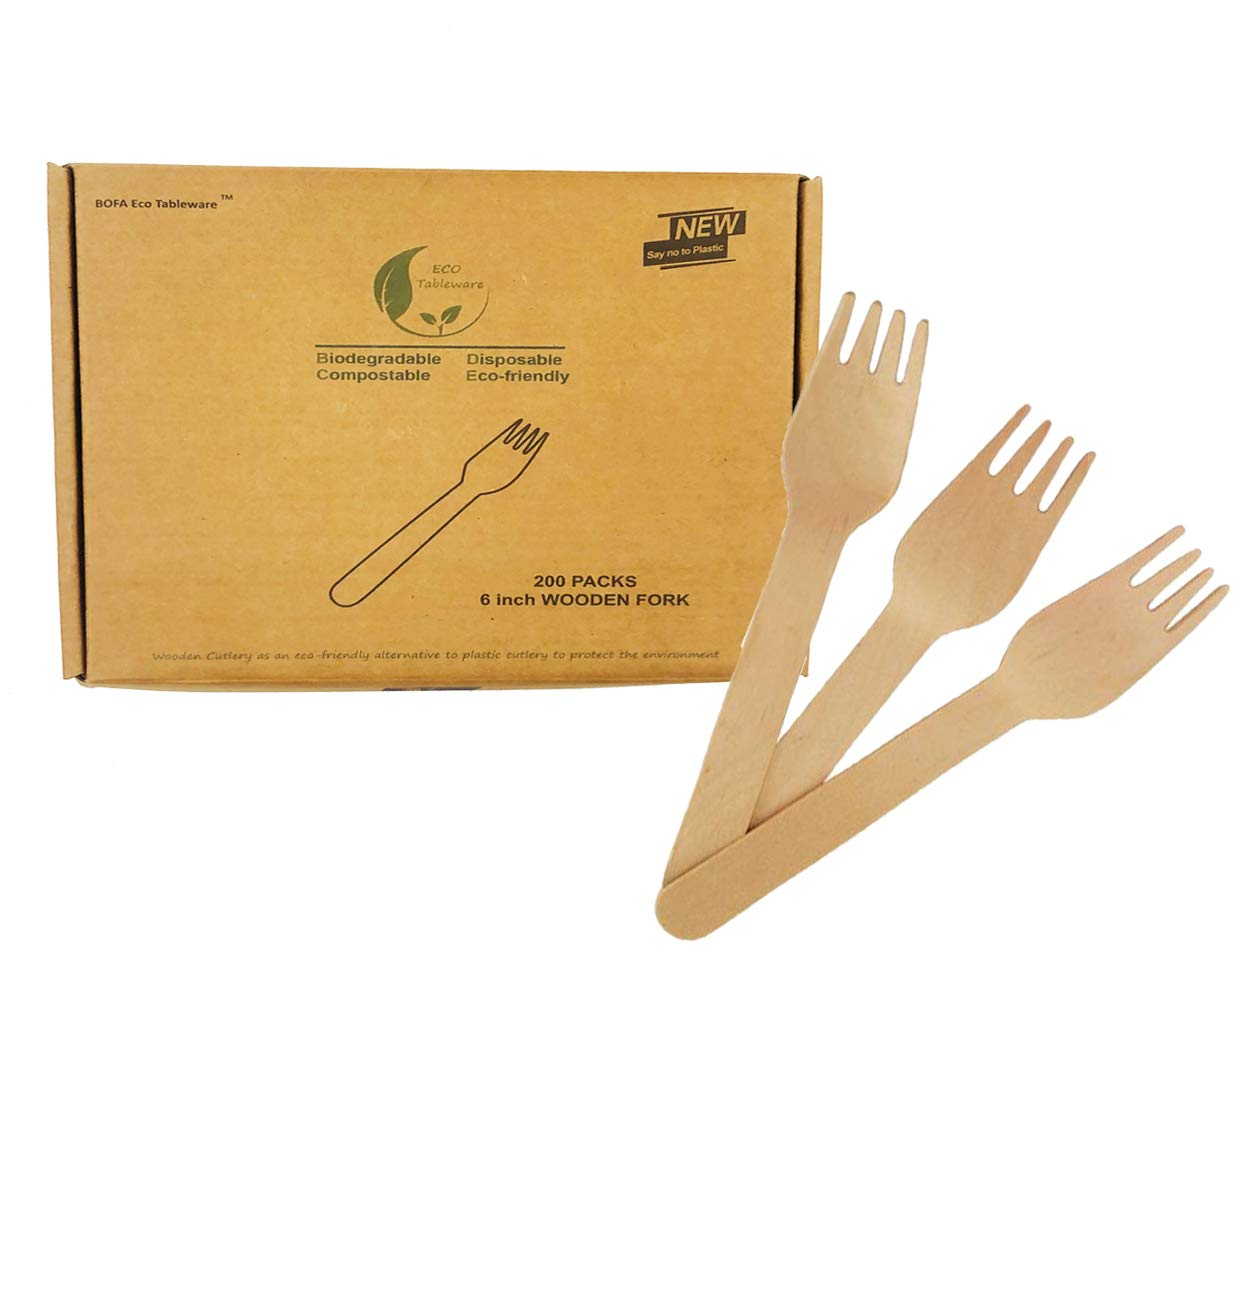 100/% Biodegradbale Eco-Friendly Utensils Fork 200 Count for Party Meeting Camping Zerowaste Natural Wooden Forks Disposable Compostable Utensil